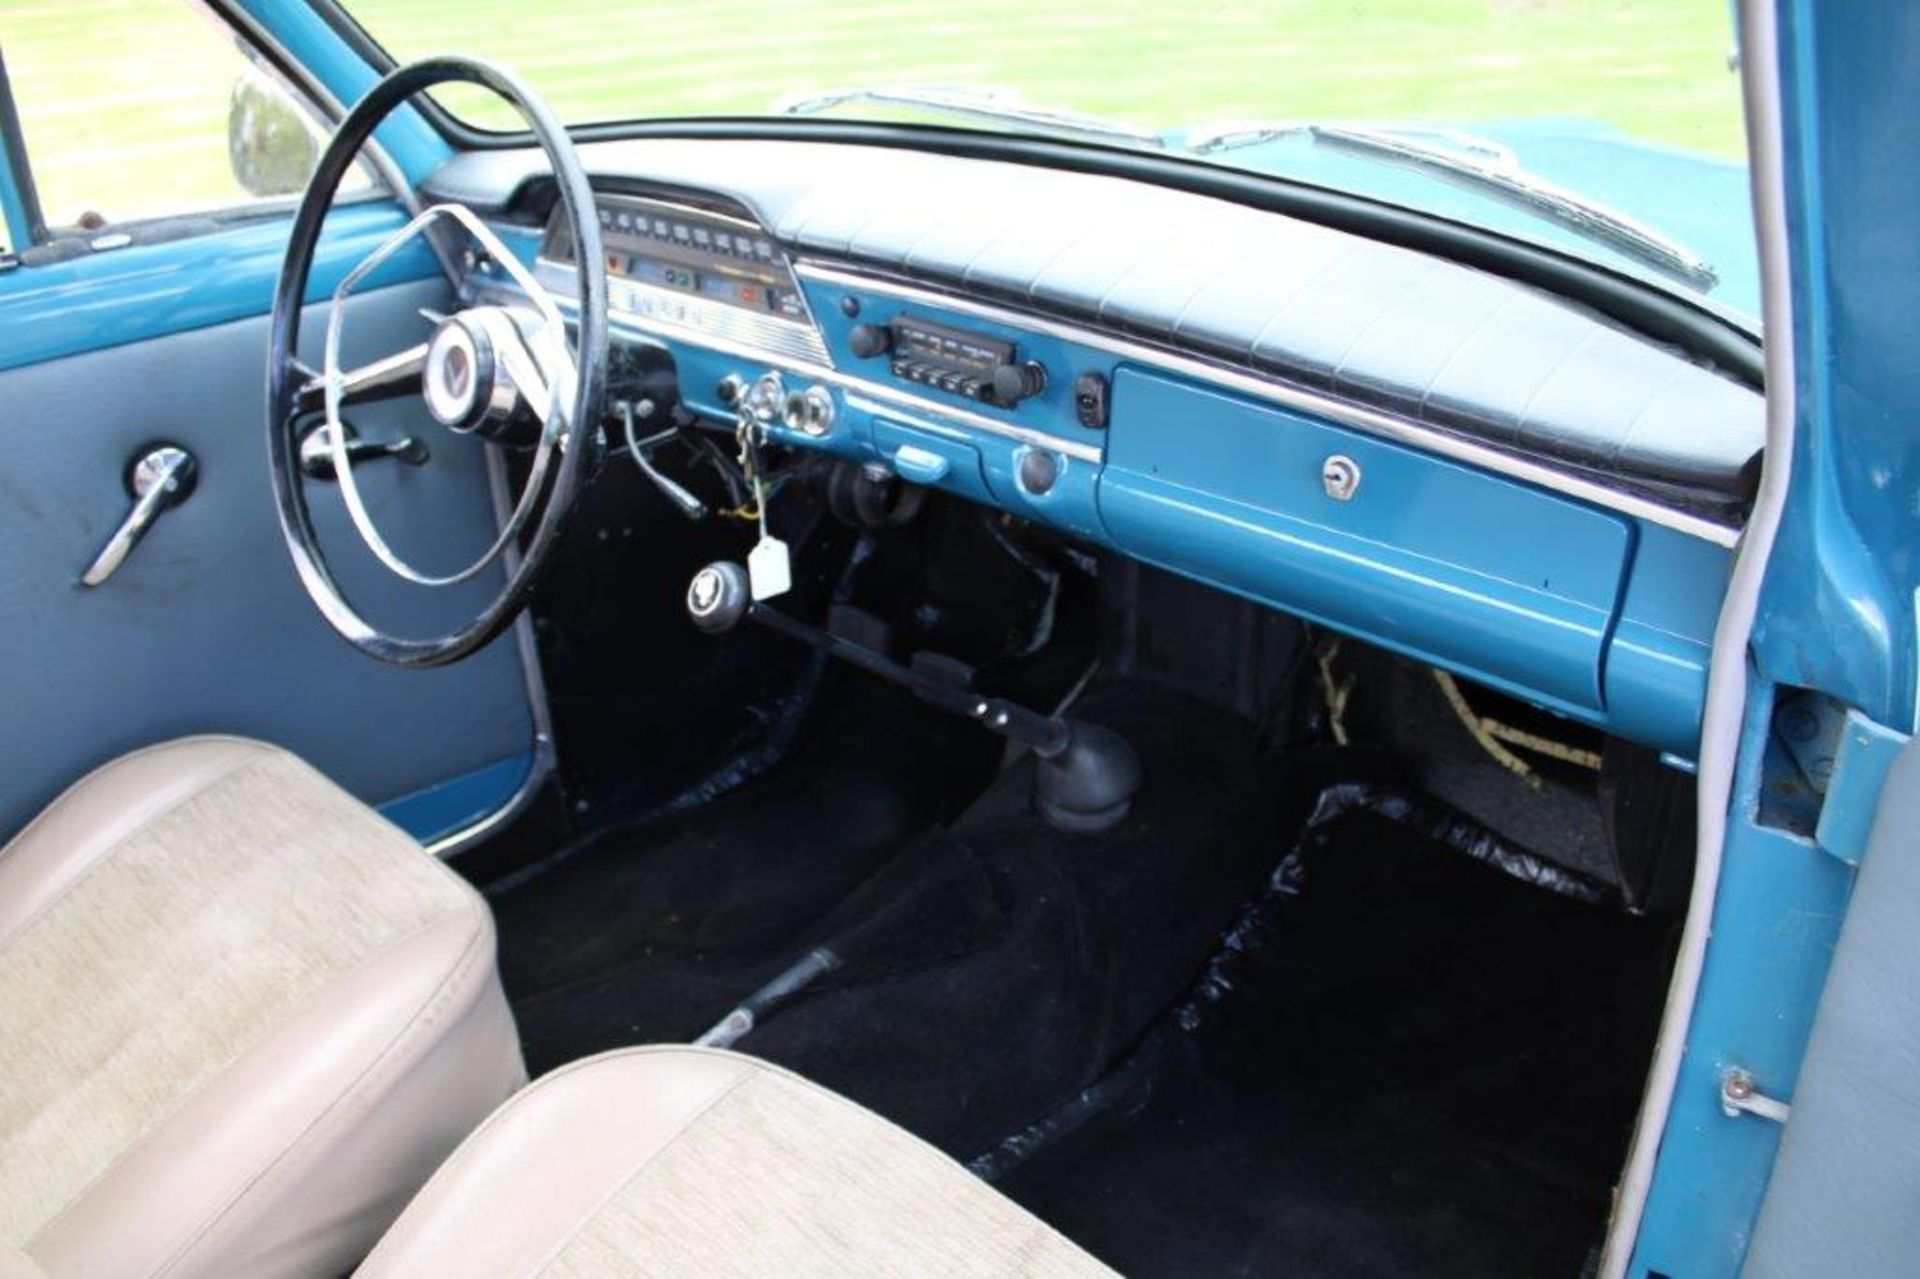 1961 Volvo P 21114 A Pick-Up LHD - Image 15 of 25